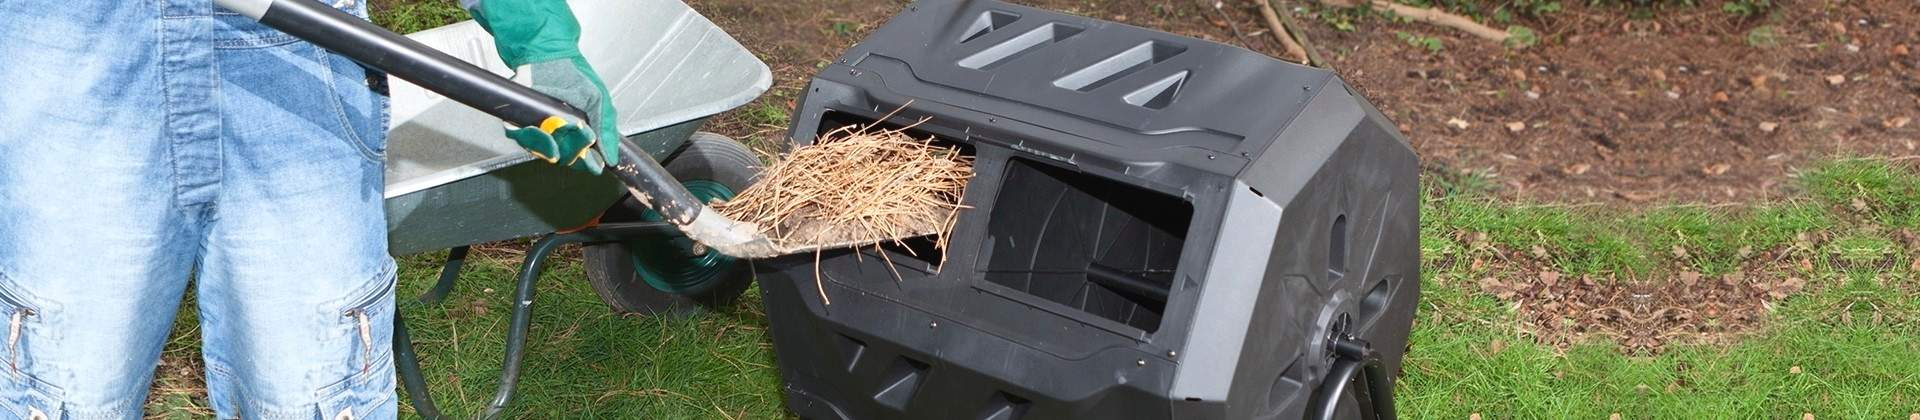 Best Compost Tumblers Reviewed in Detail